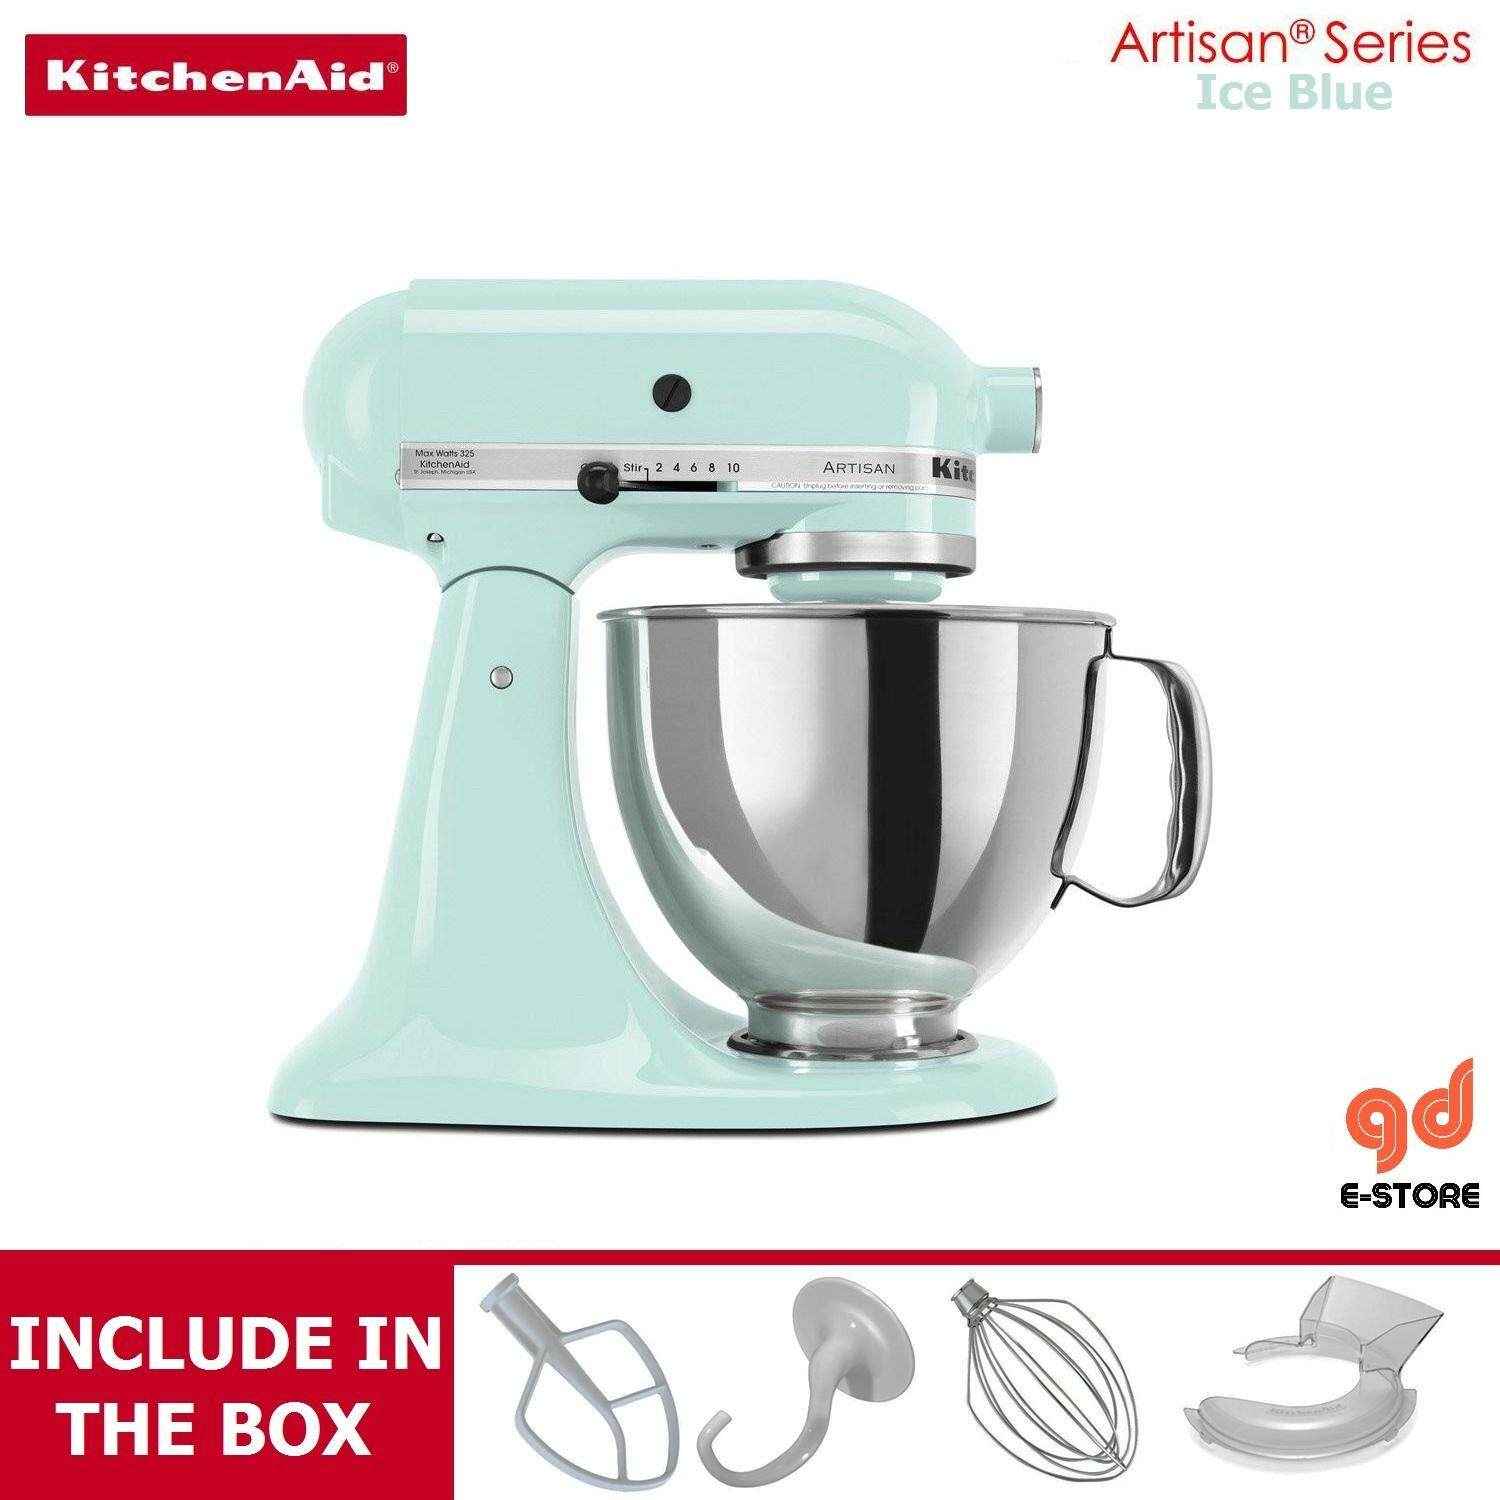 KitchenAid Mixers for the Best Price in Malaysia on benjamin moore ice blue, kitchenaid ice maker, kitchenaid artisan mixer ice, kitchenaid crystal blue, kitchenaid indigo blue, kitchenaid stand mixer blue, kitchenaid sky blue, kitchenaid azure blue, kitchenaid electric blue, kitchenaid light blue, miele ice blue, kitchenaid ice rose,